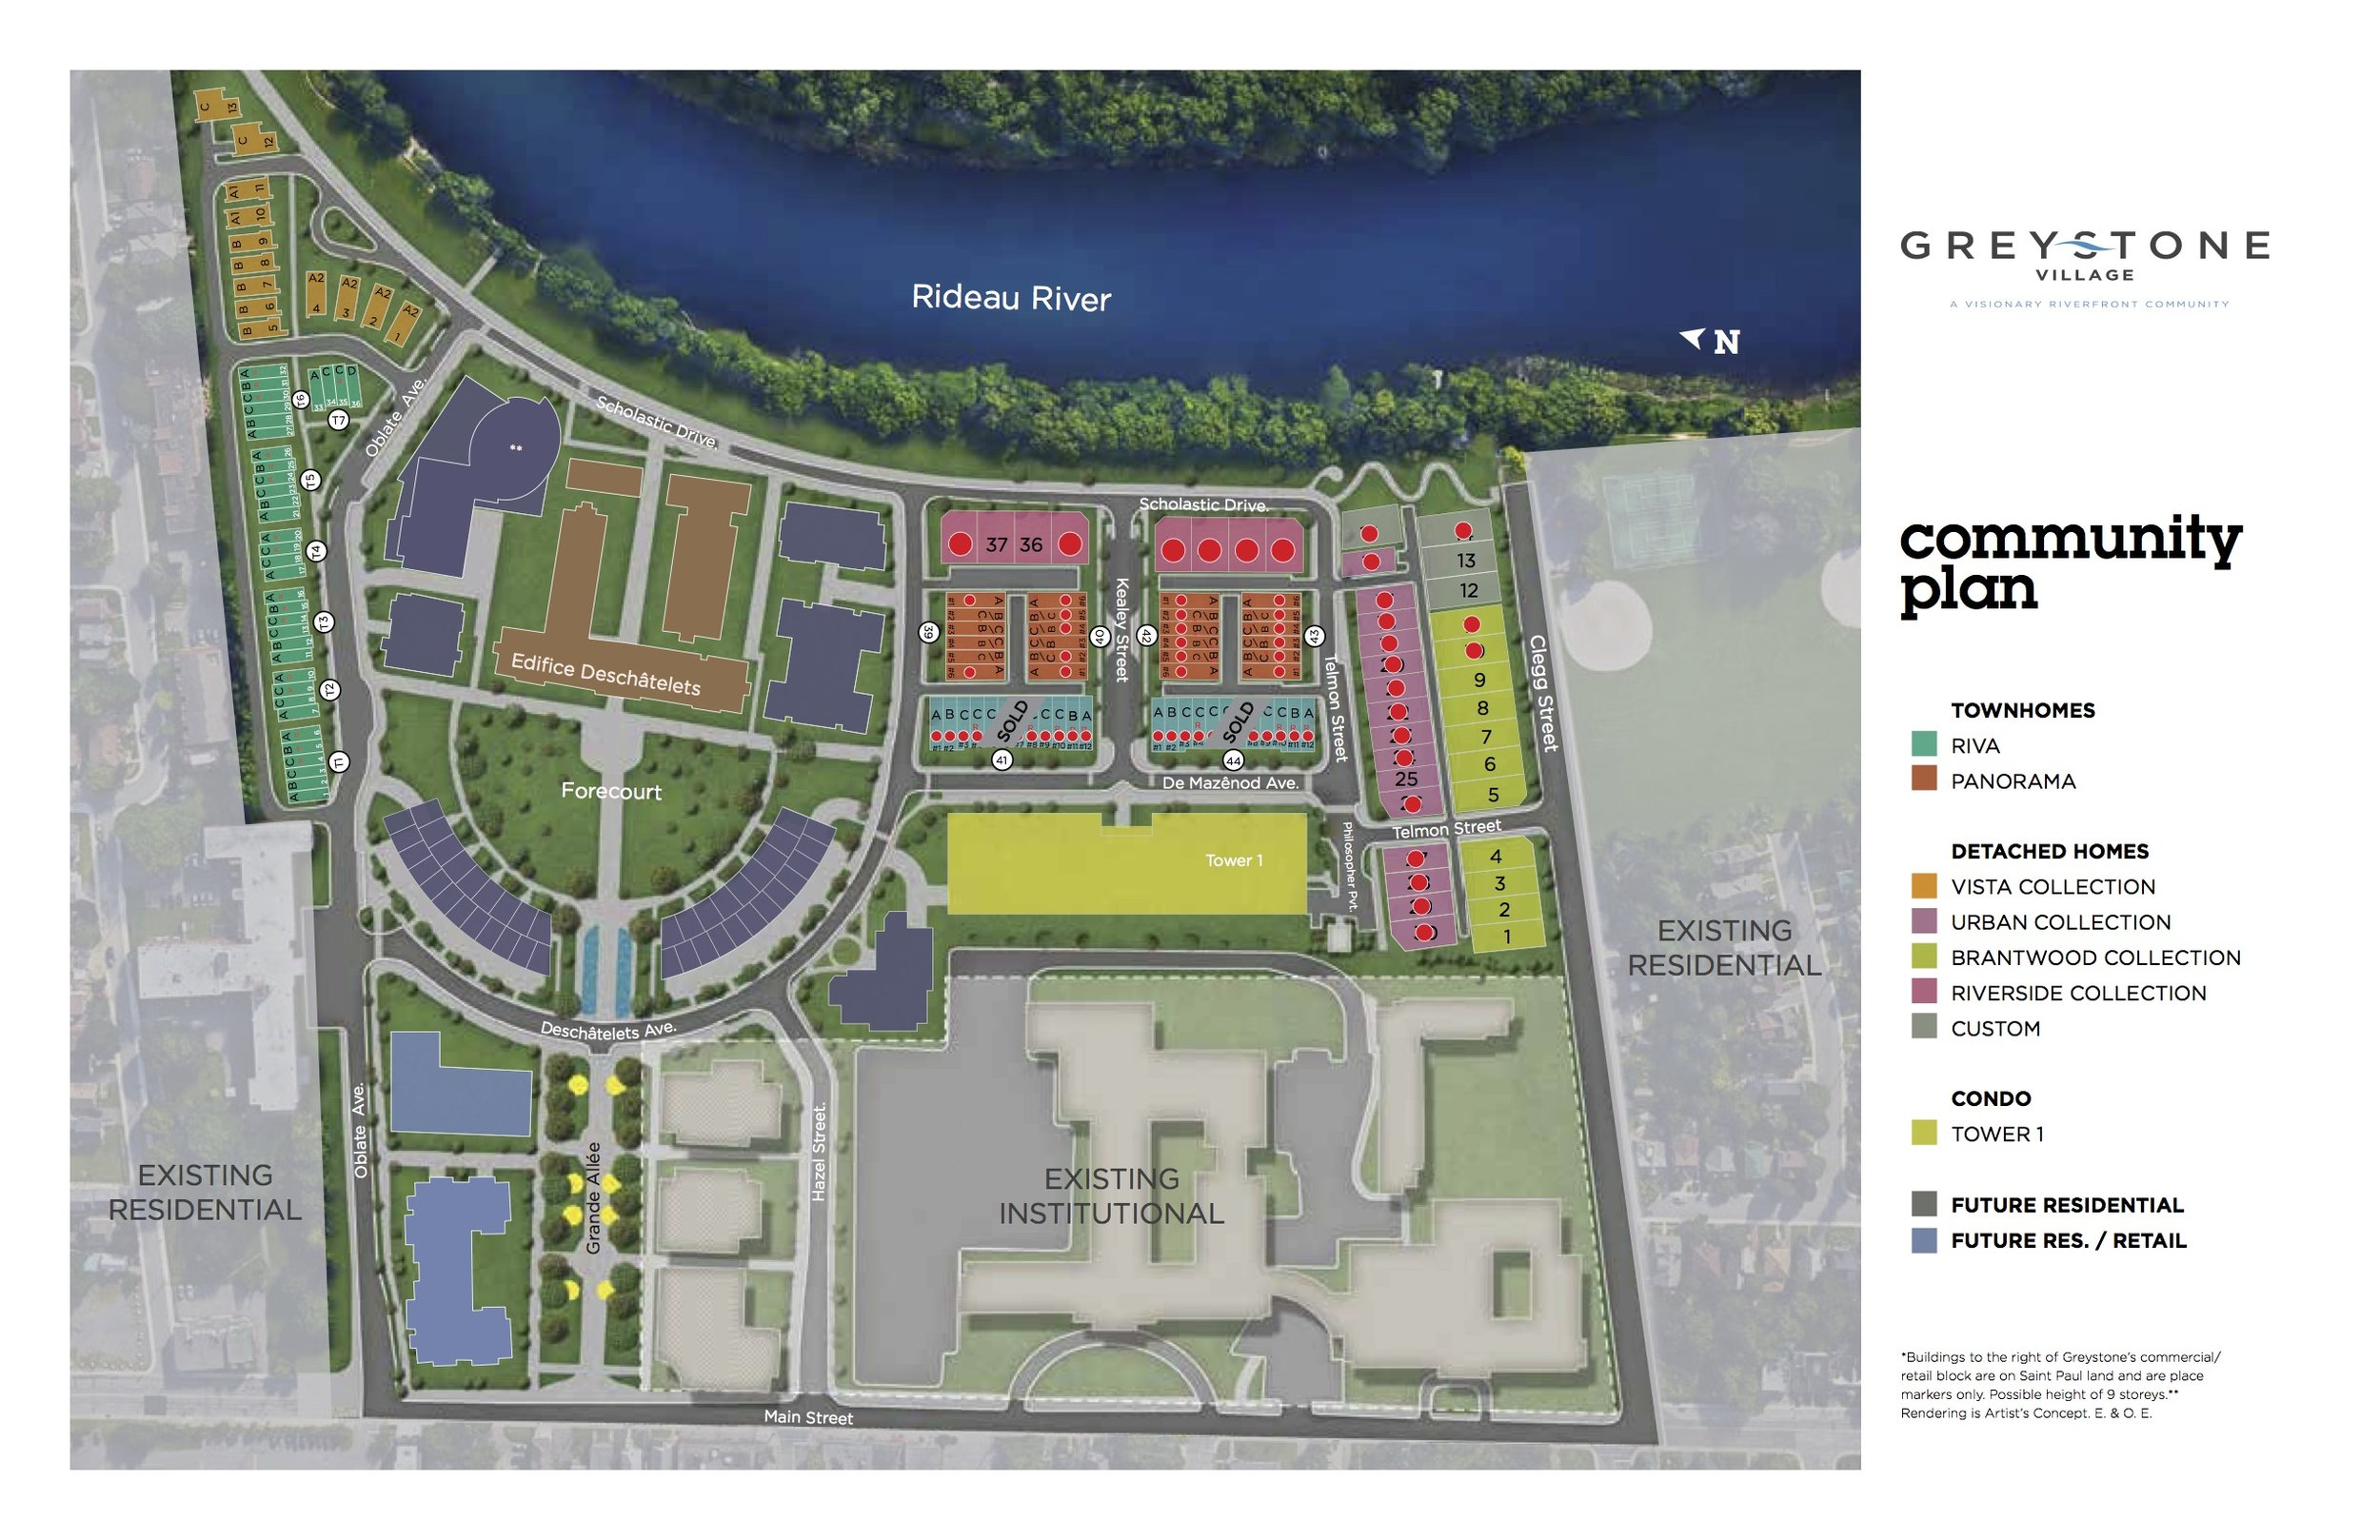 Greystone Village Community Site Plan